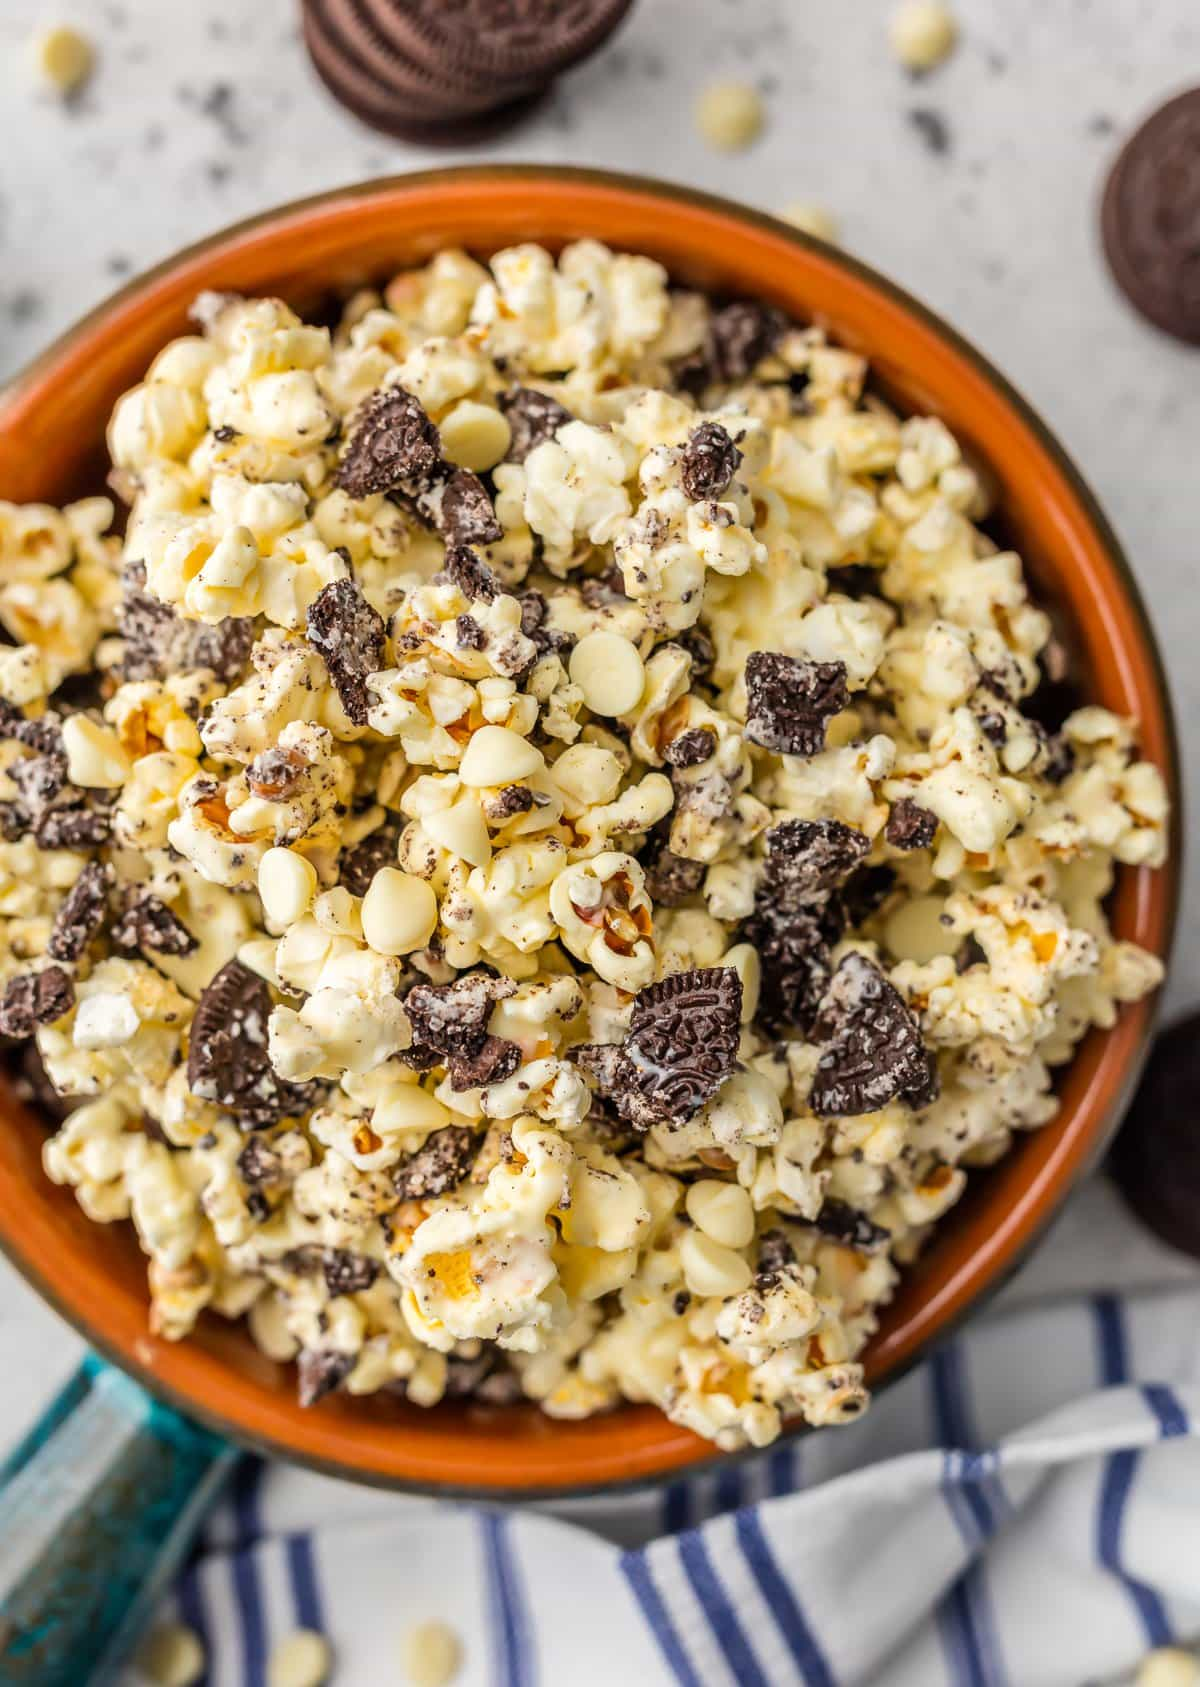 Sweet and salty popcorn recipe: a bowl of popcorn with Oreos and white chocolate chips